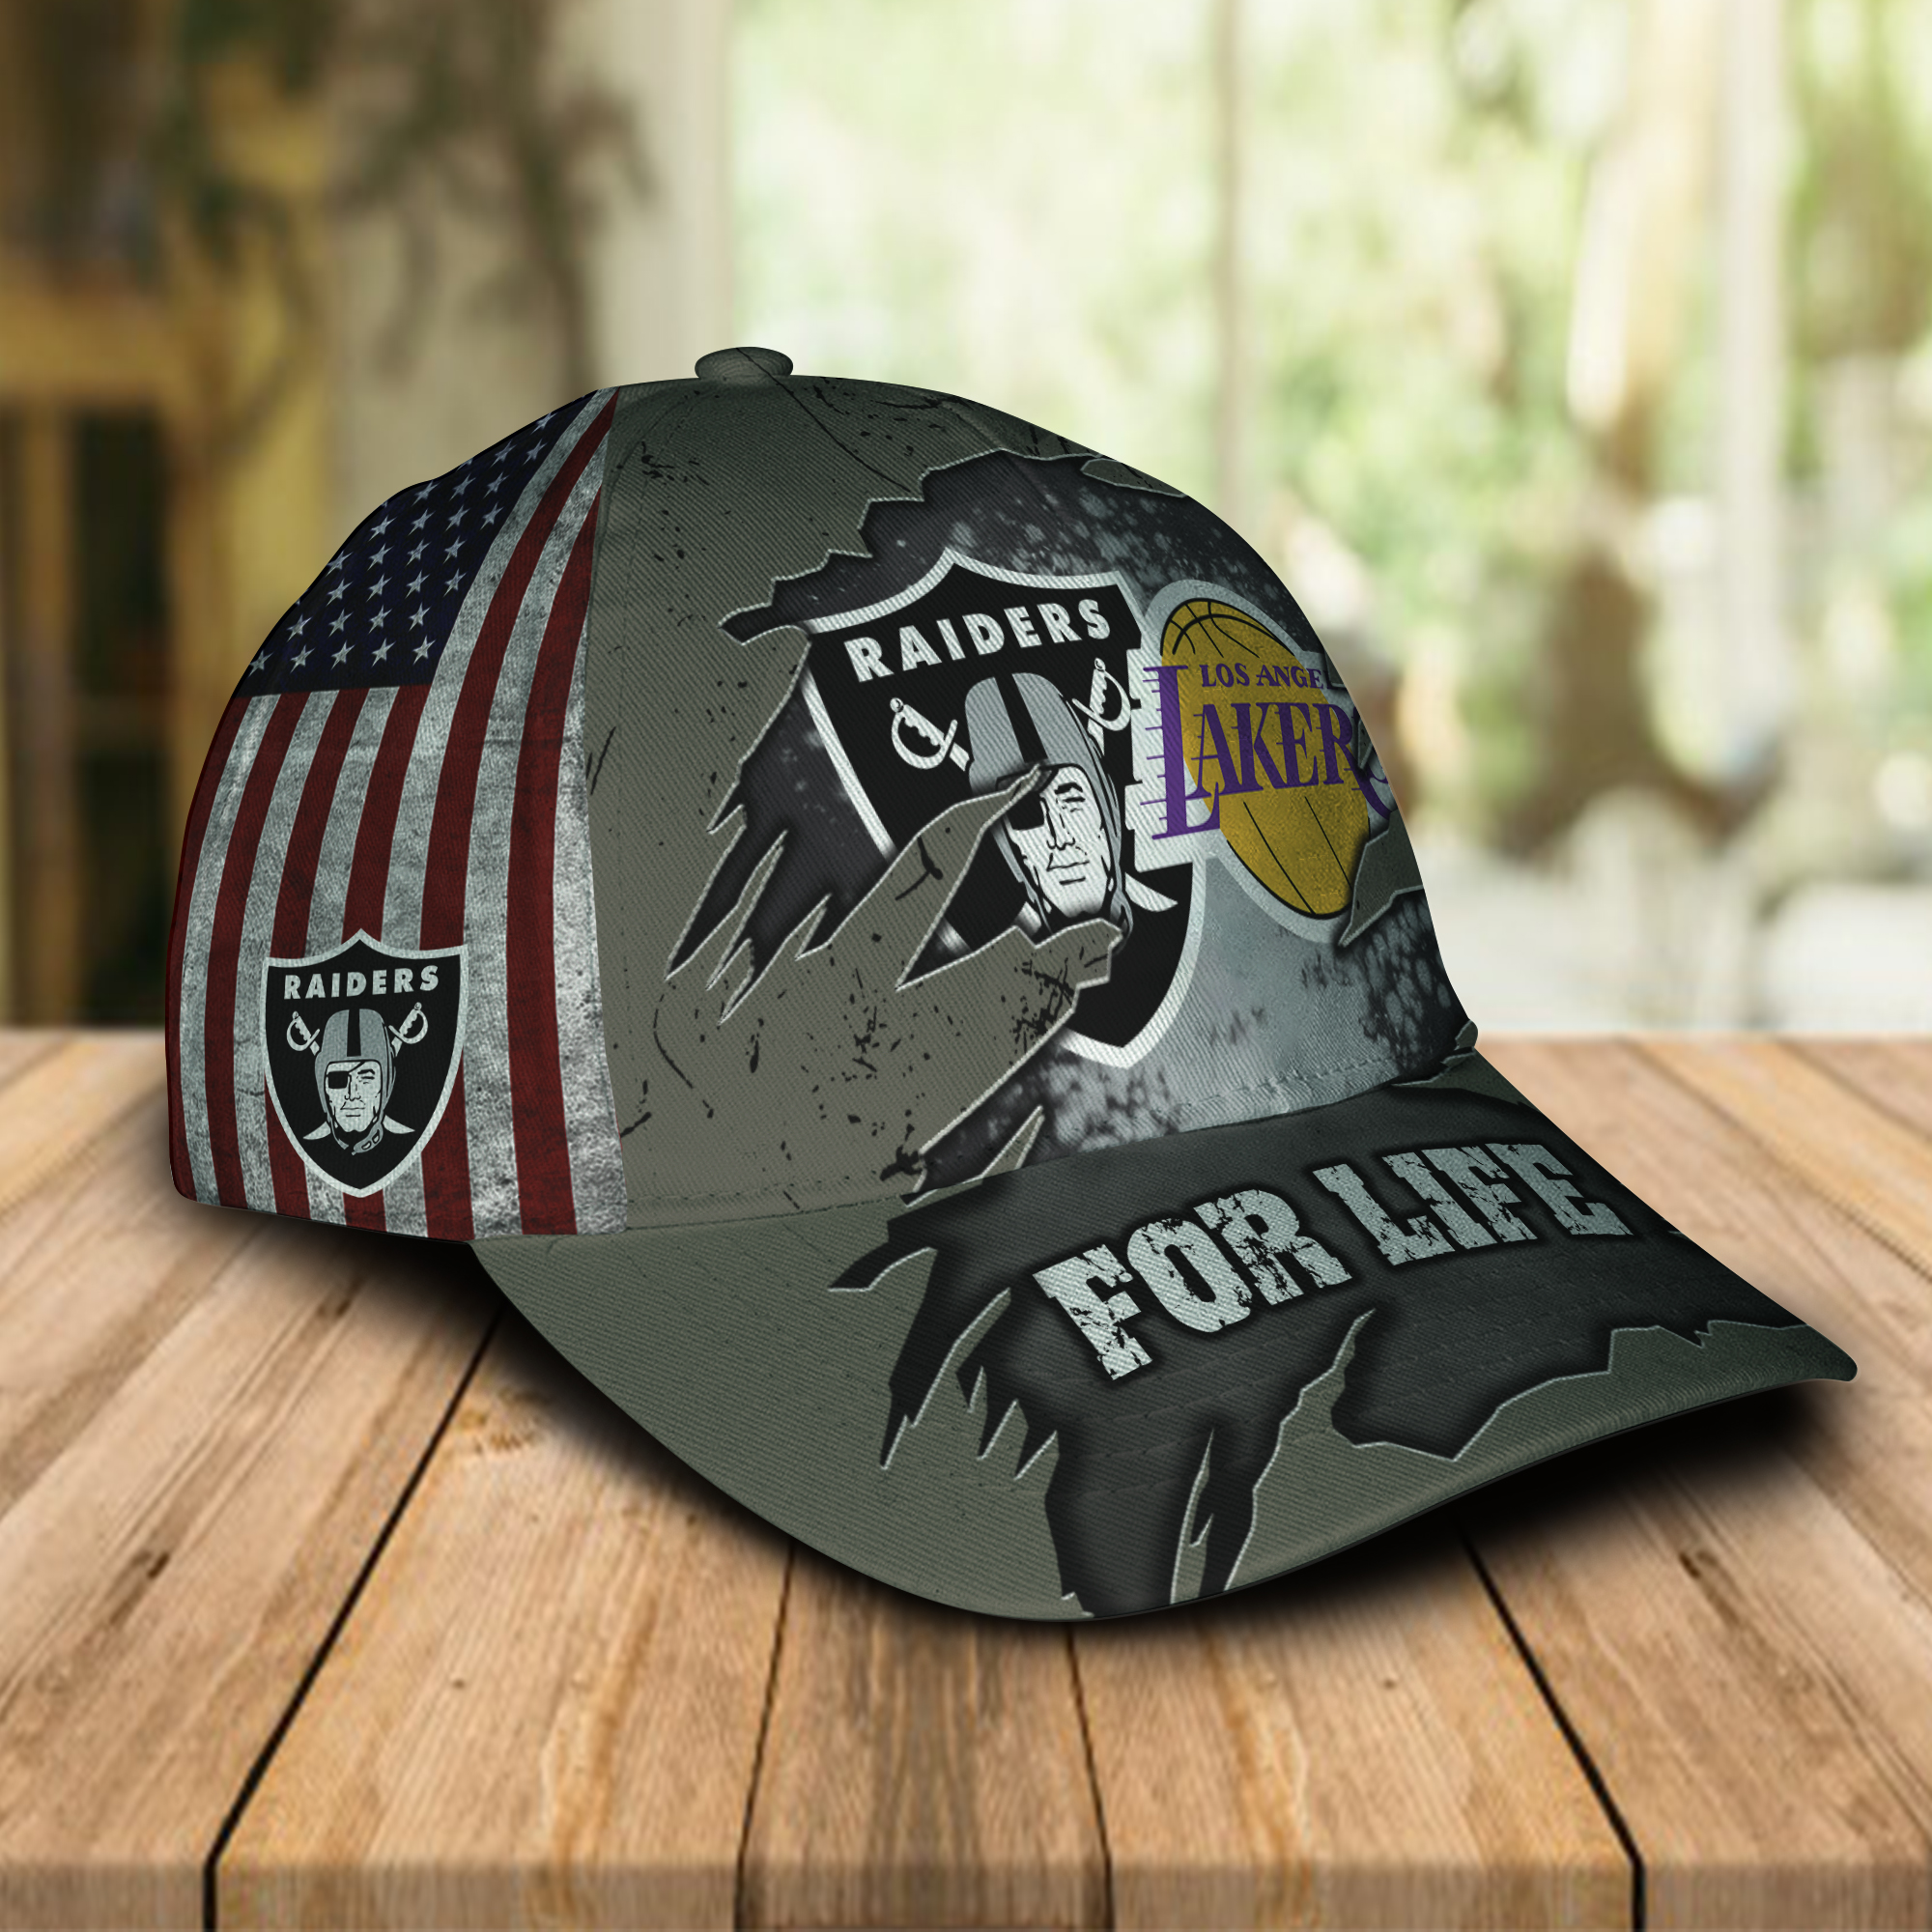 Raiders And Los Angeles Lakers For Life Cap 2